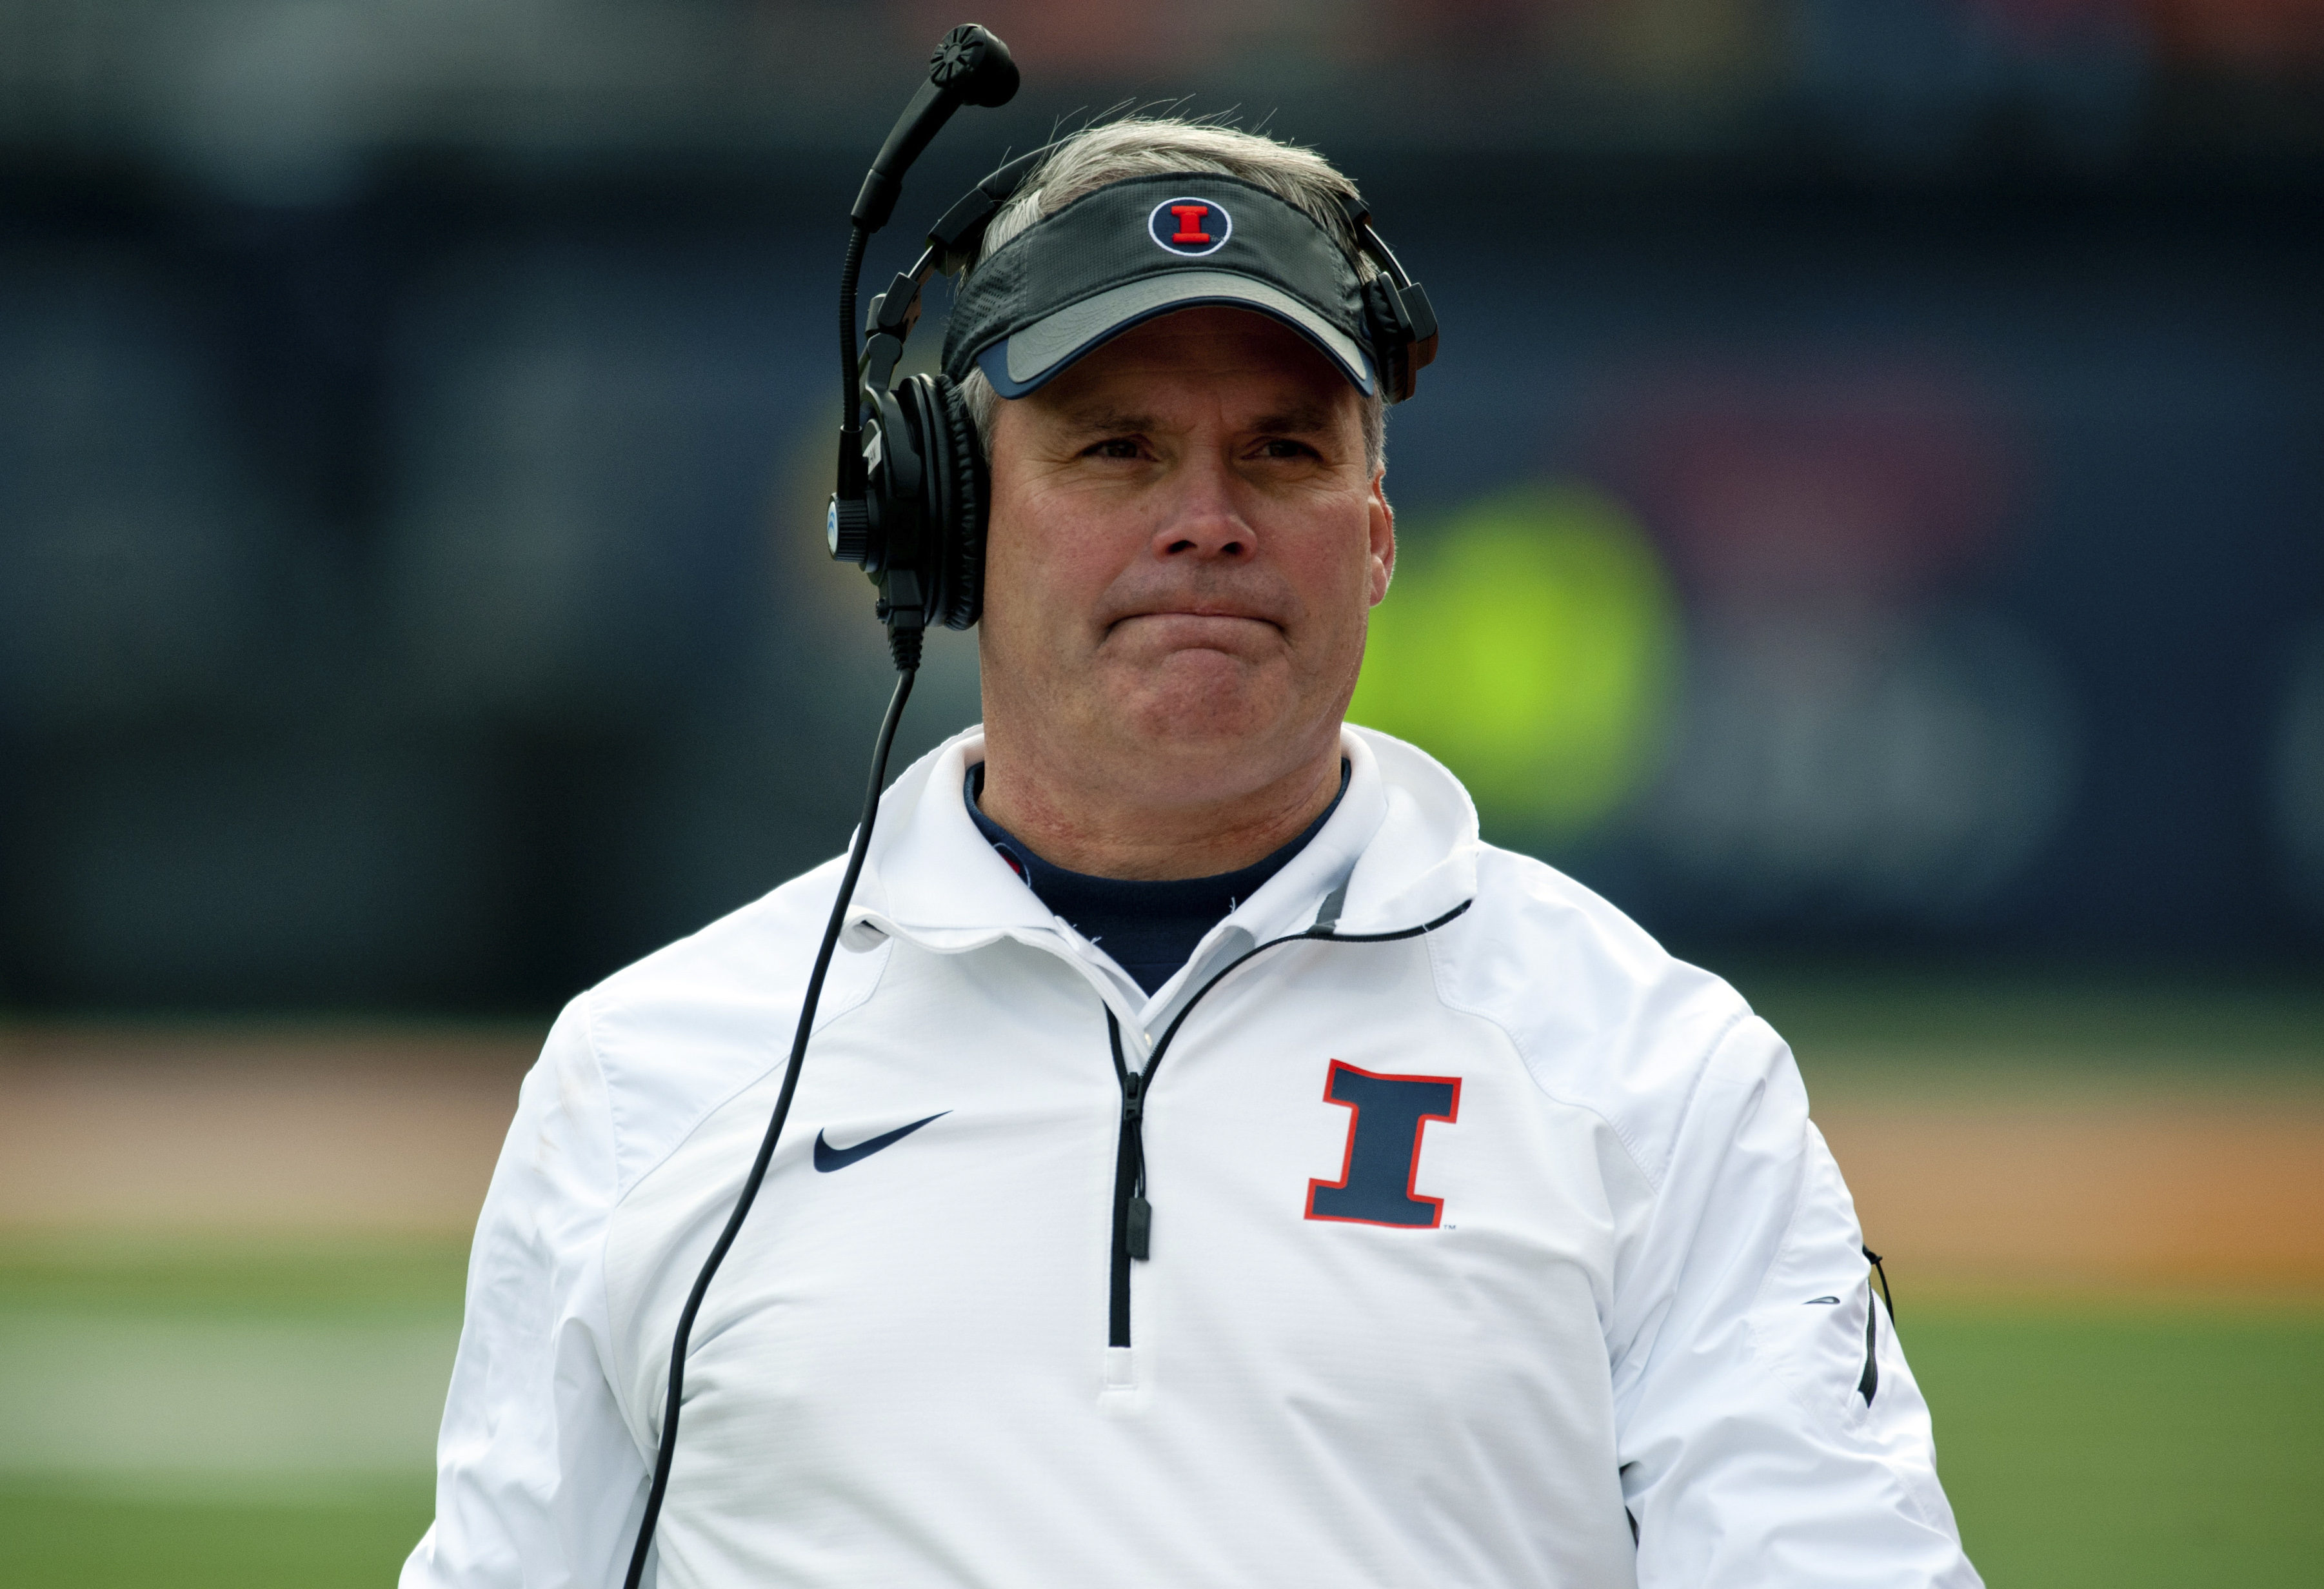 Illinois head coach Tim Beckman walks the sidelines during the first quarter of an NCAA football game against Penn State Saturday, Nov. 22, 2014, at Memorial Stadium in Champaign, Ill. (AP Photo/Bradley Leeb)